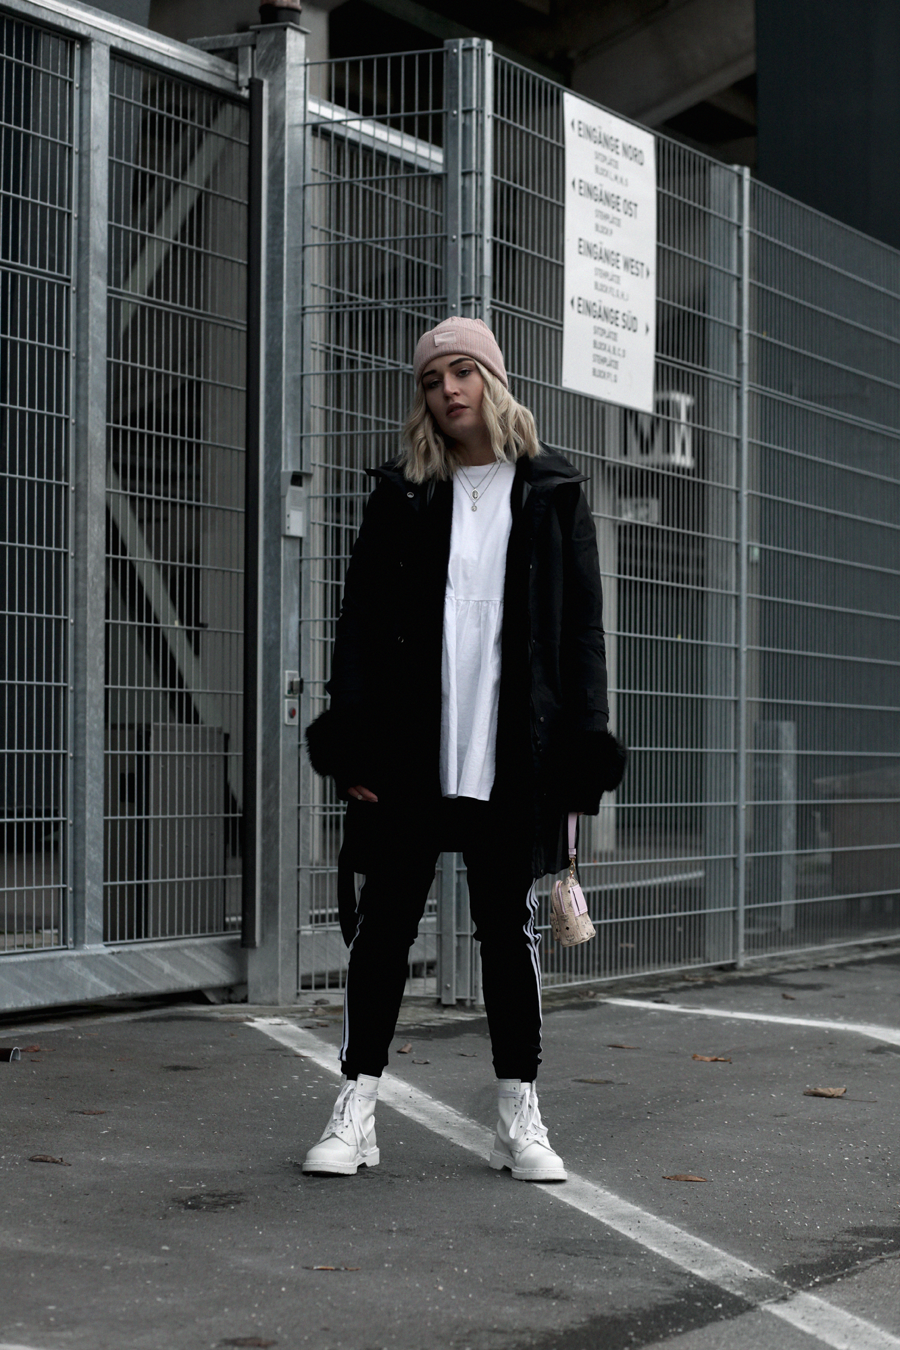 lauralamode-outfit-style-look-everest-stadium-fashion-fashionblog-modeblog-lifestyle-autumn-winter-ootd-munich-muc-blogger-fashionblogger